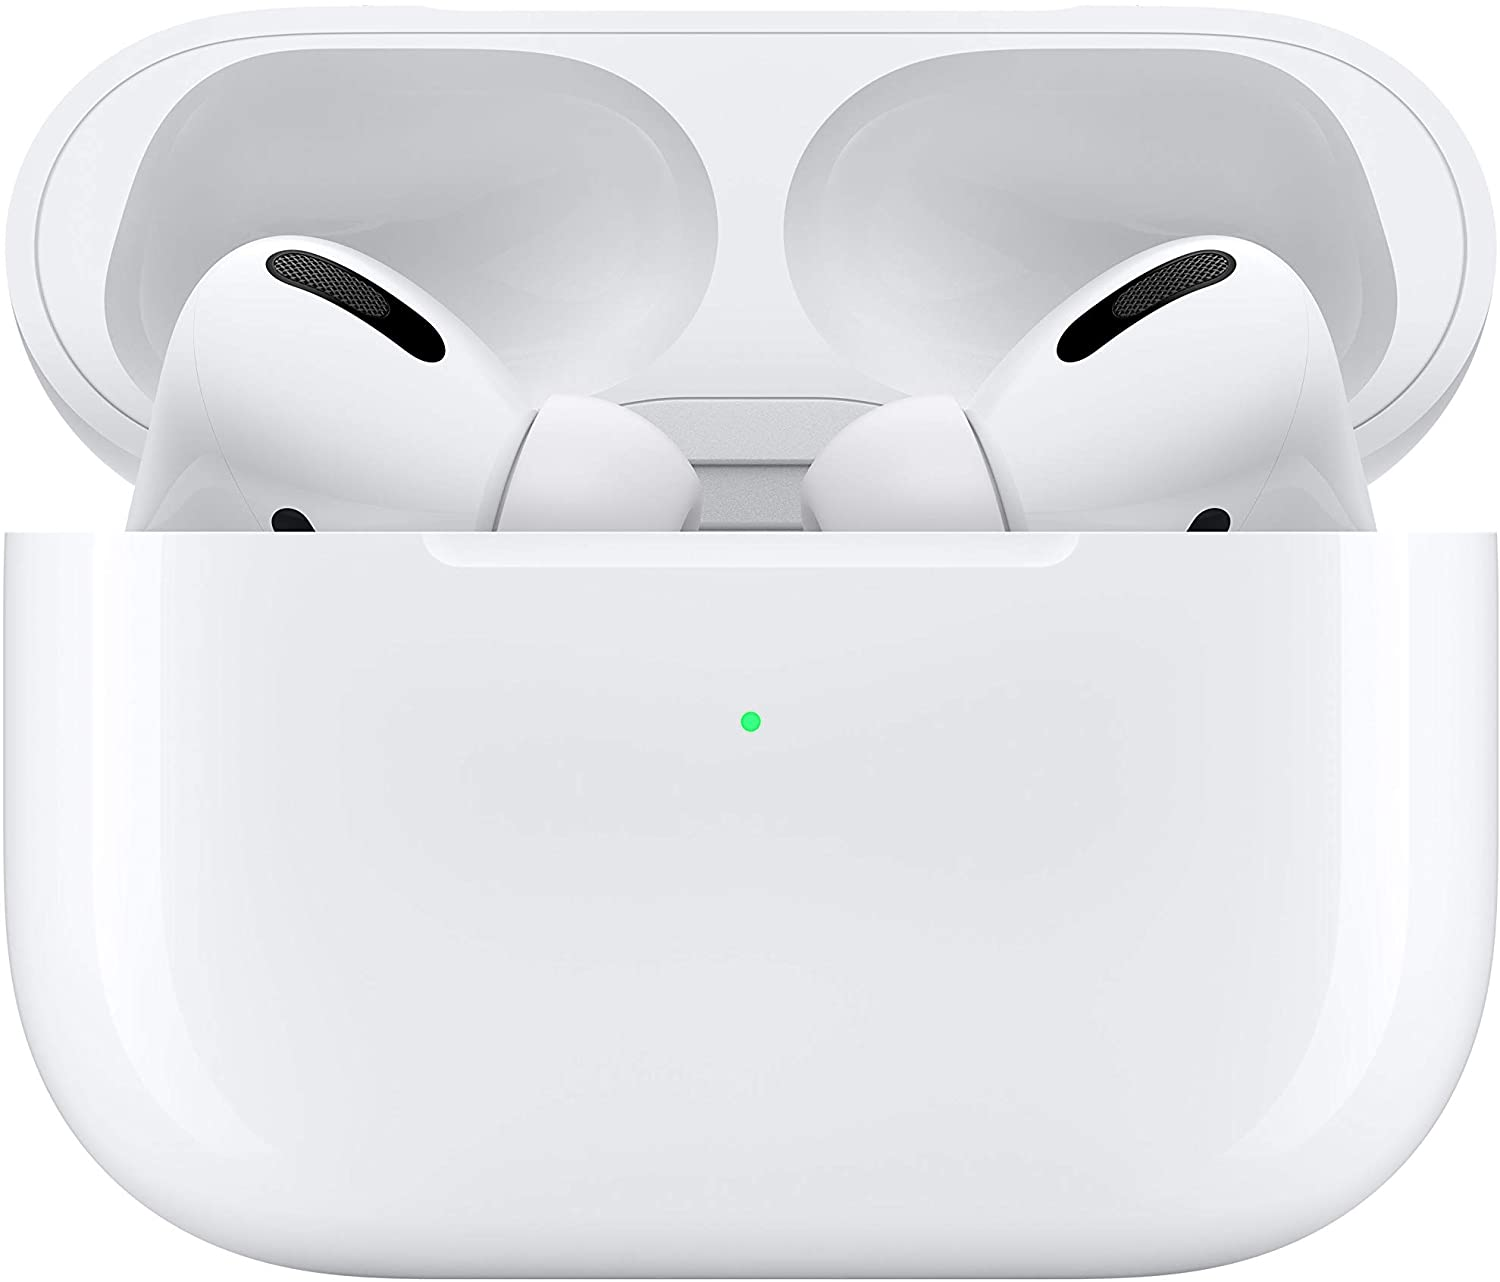 Apple Airpods pro image